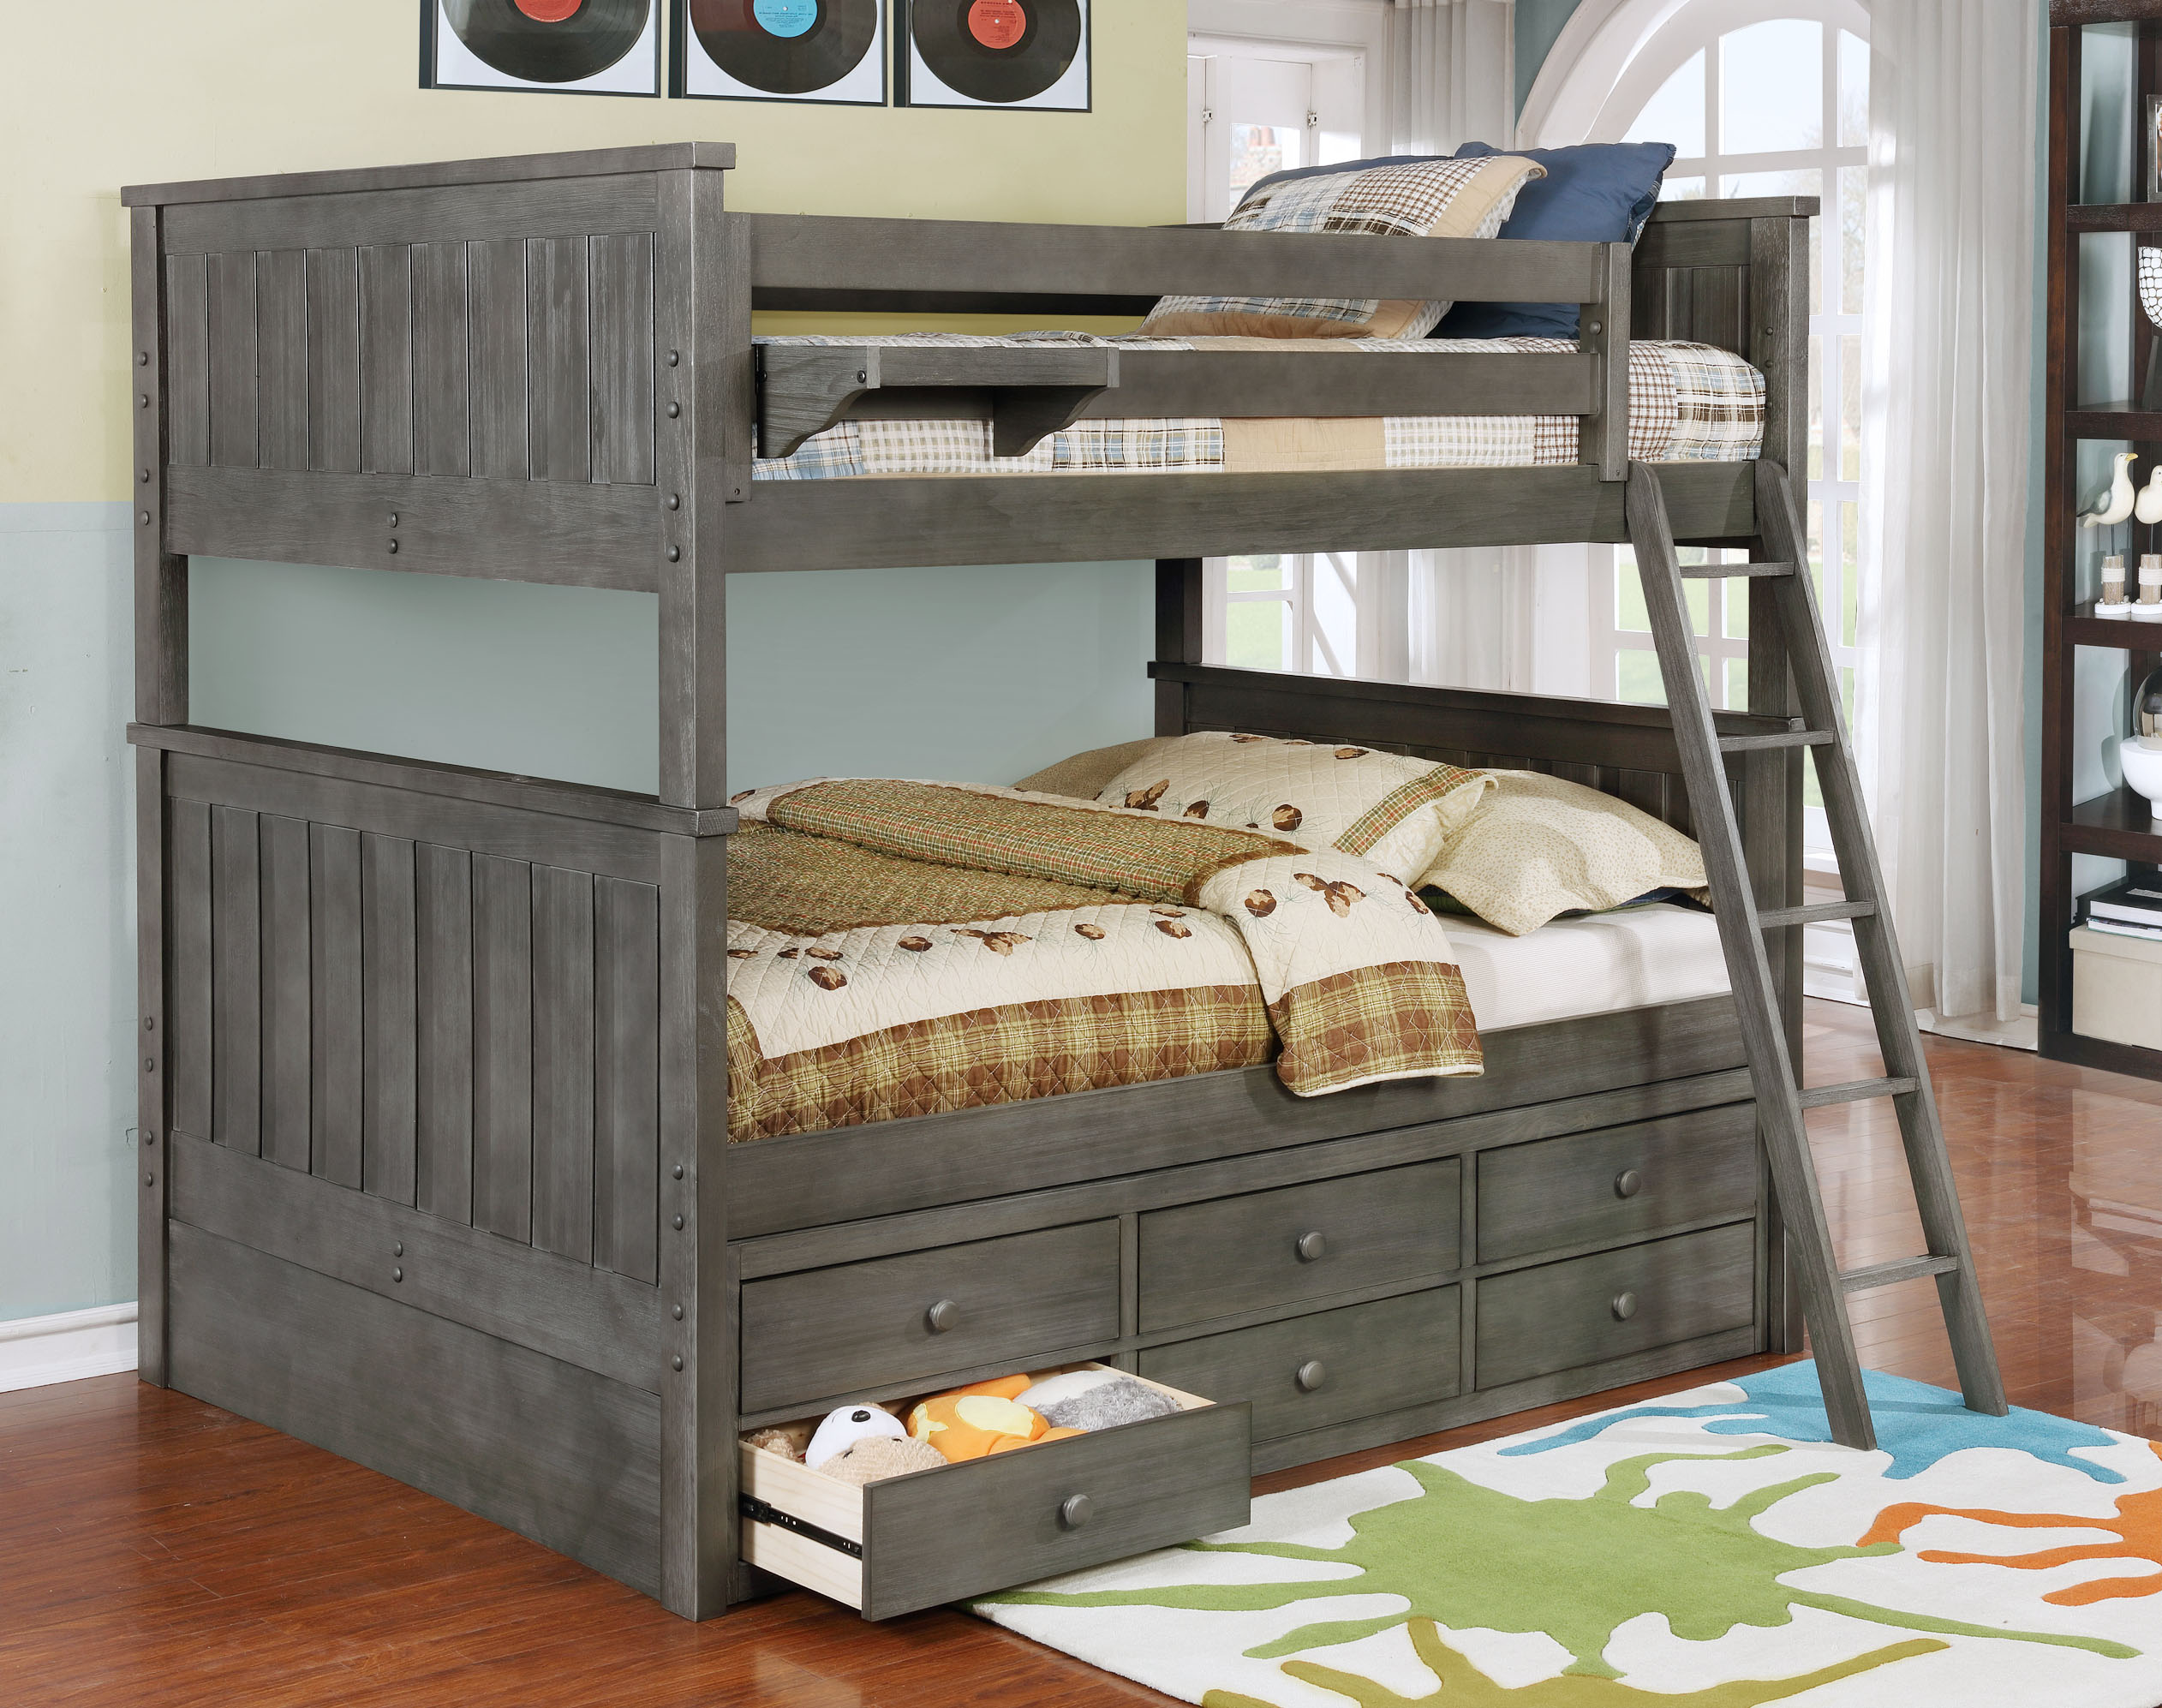 Jackson Full Over Full Bunk Bed White Espresso Rustic Pecan Graphite Grey Weathered Grey Kids Furniture In Los Angeles